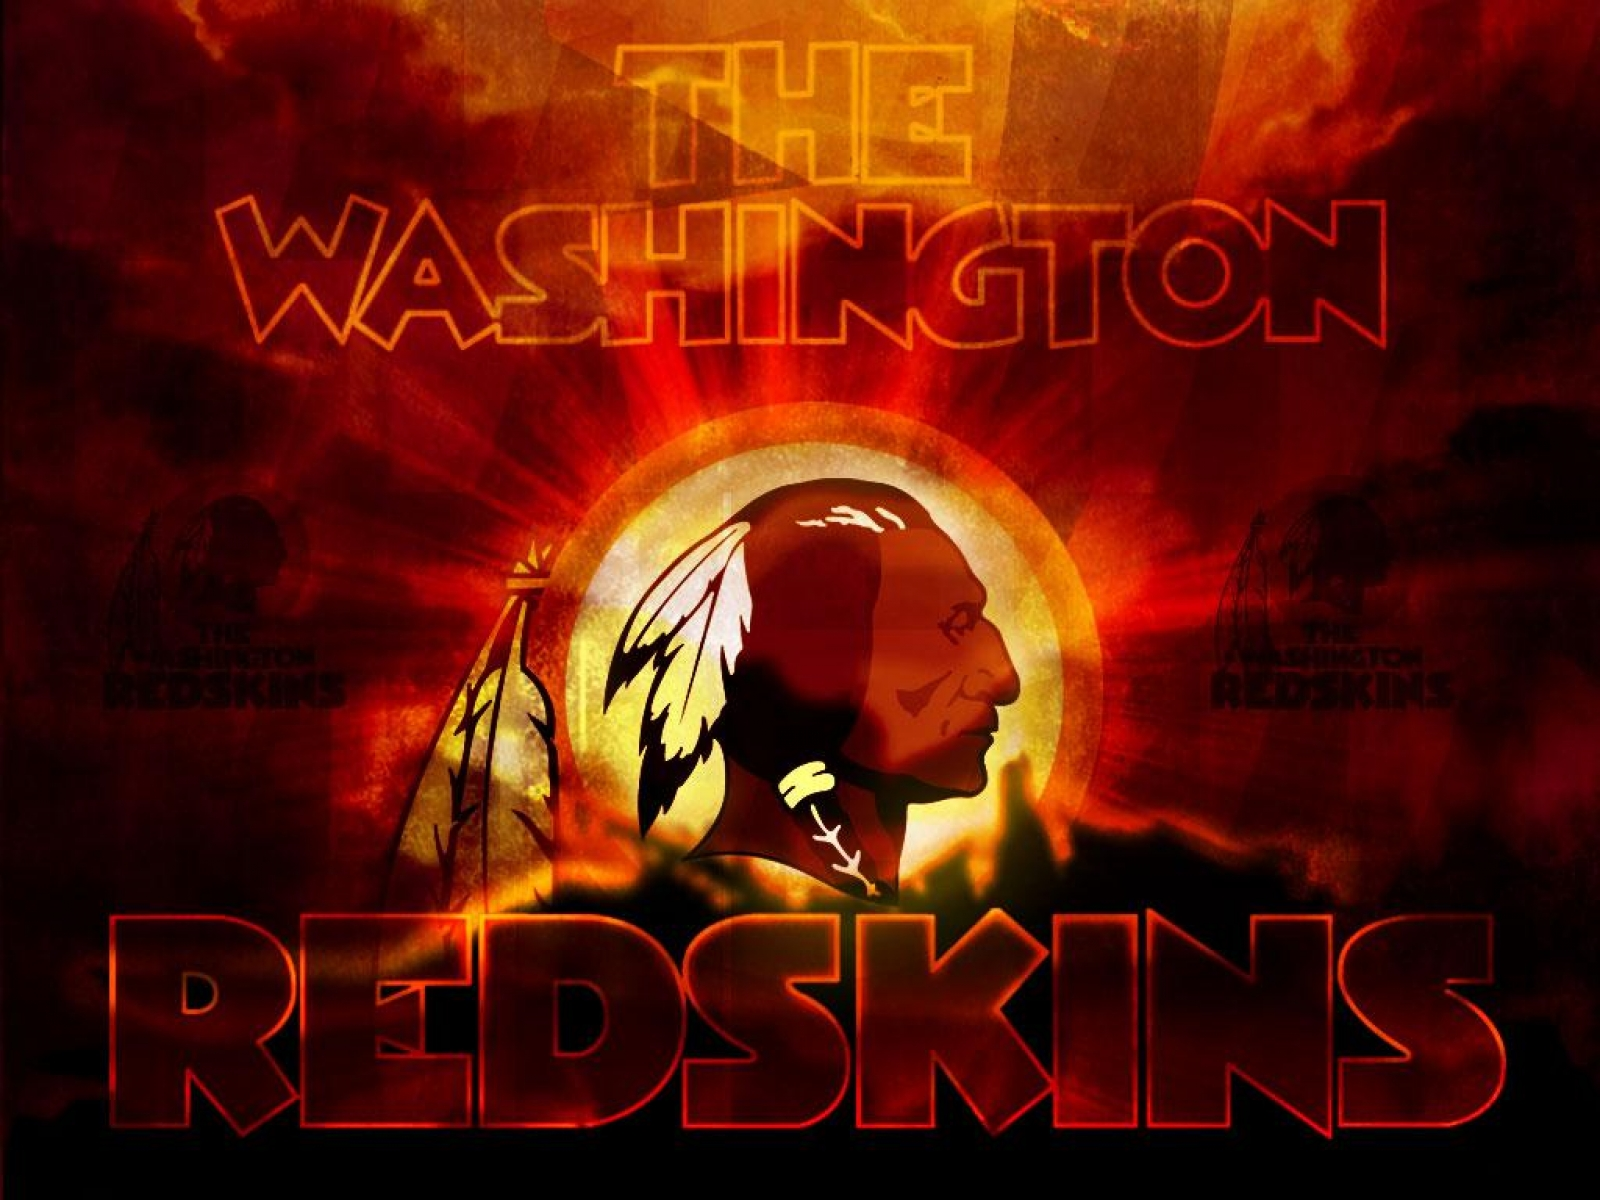 RedSkins HD Background Wallpaper HD Wallpapers HD Backgrounds 1600x1200